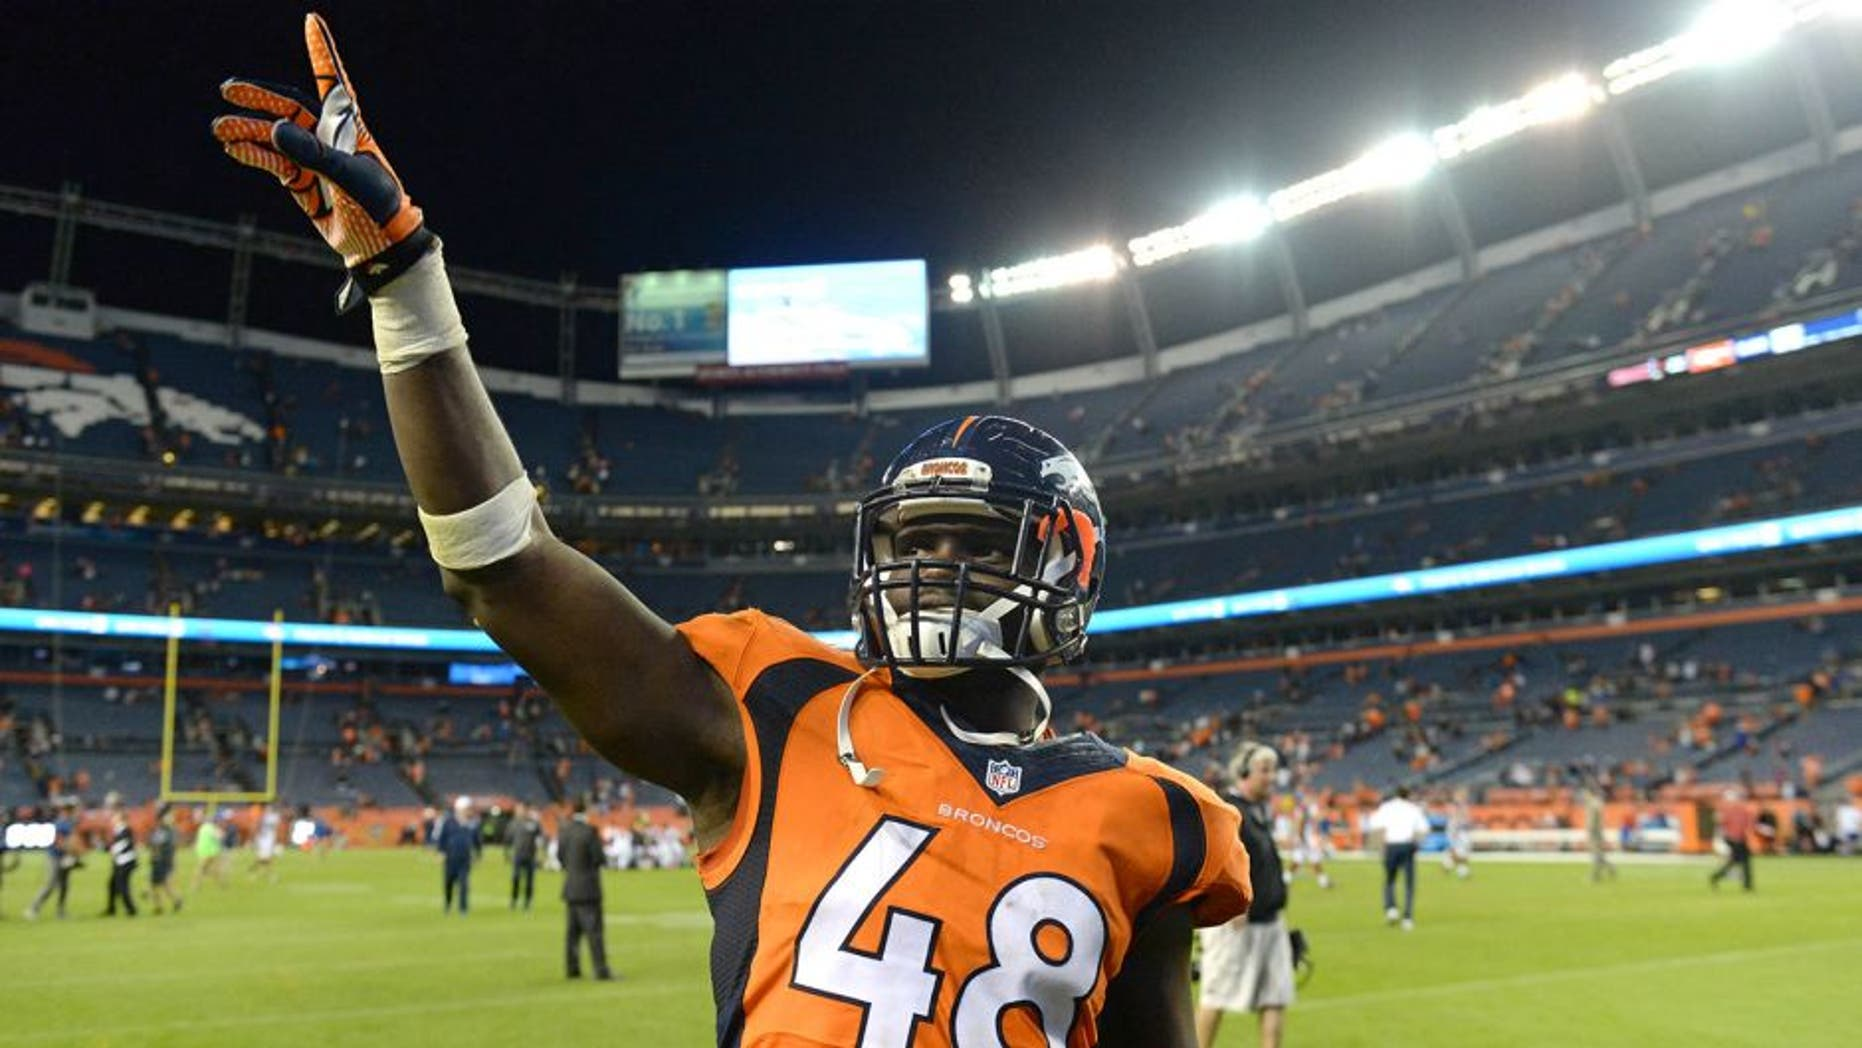 Sep 3, 2015; Denver, CO, USA; Denver Broncos linebacker Shaquil Barrett (48) leaves the field following the preseason loss to the Arizona Cardinals at Sports Authority Field at Mile High. The Cardinals defeated the Broncos 22-20. Mandatory Credit: Ron Chenoy-USA TODAY Sports